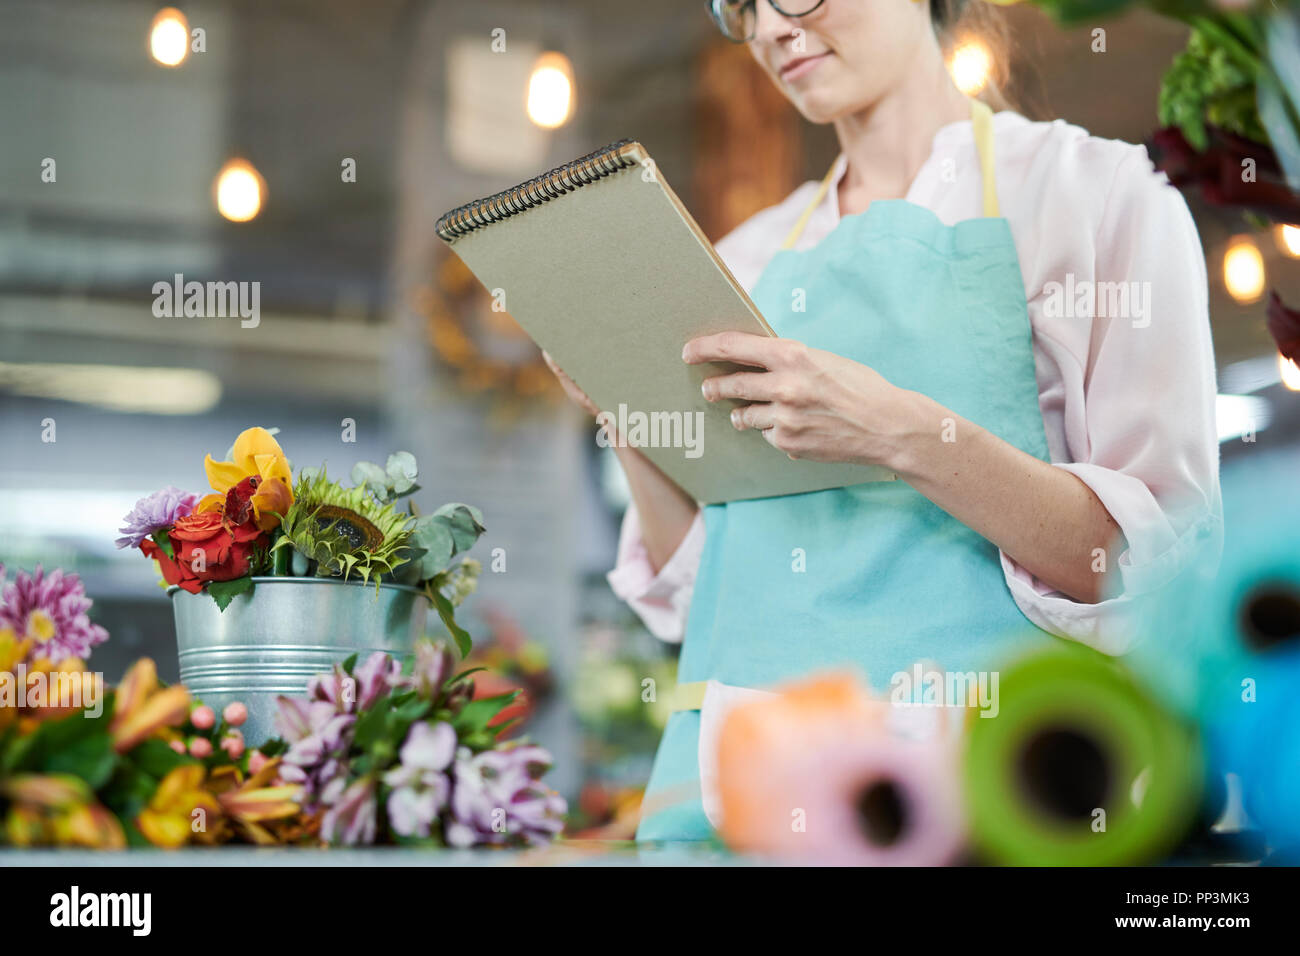 Bookkeeping in Shop - Stock Image